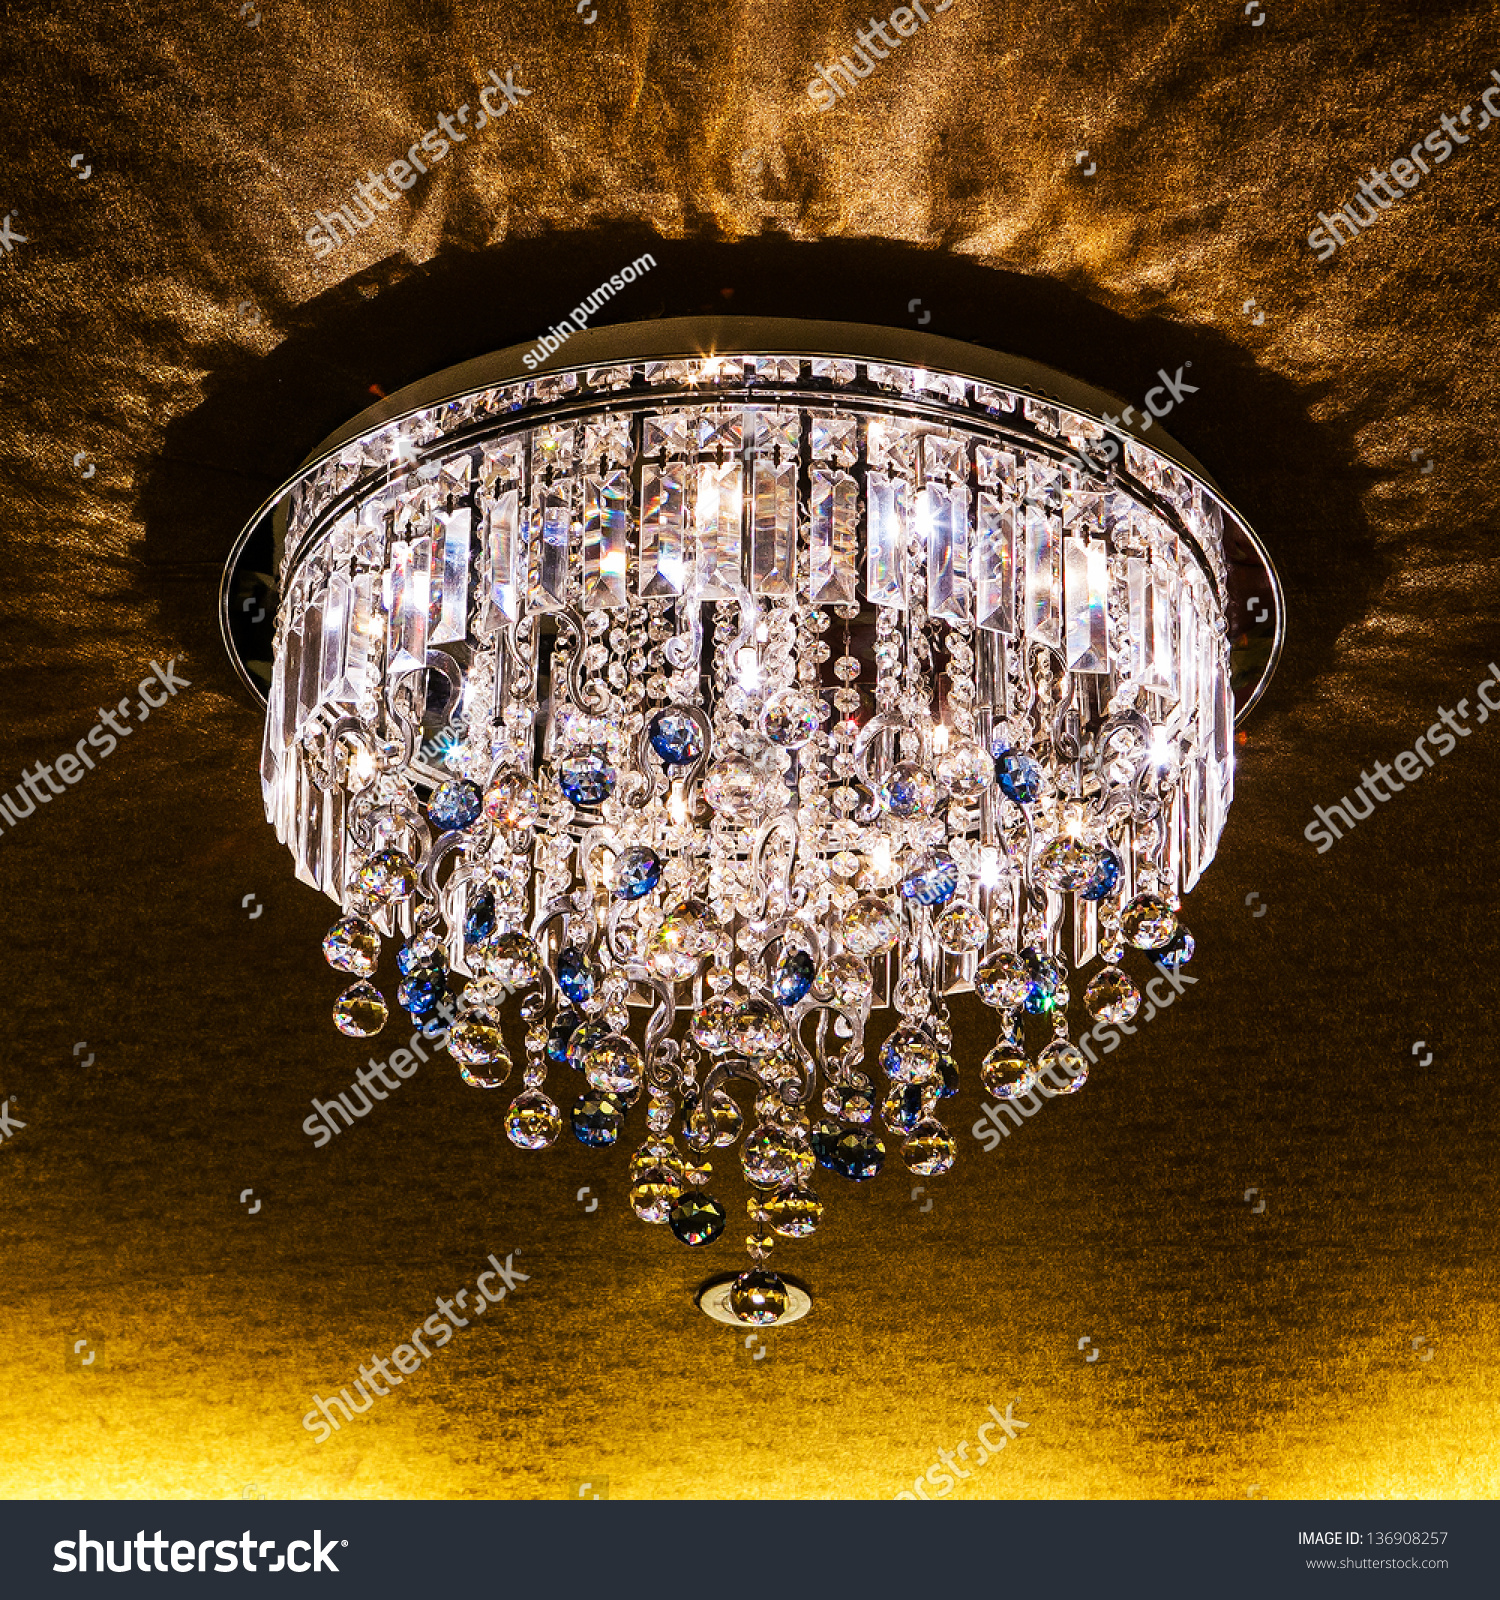 Elegant crystal chandelier stock photo 136908257 shutterstock elegant crystal chandelier arubaitofo Choice Image